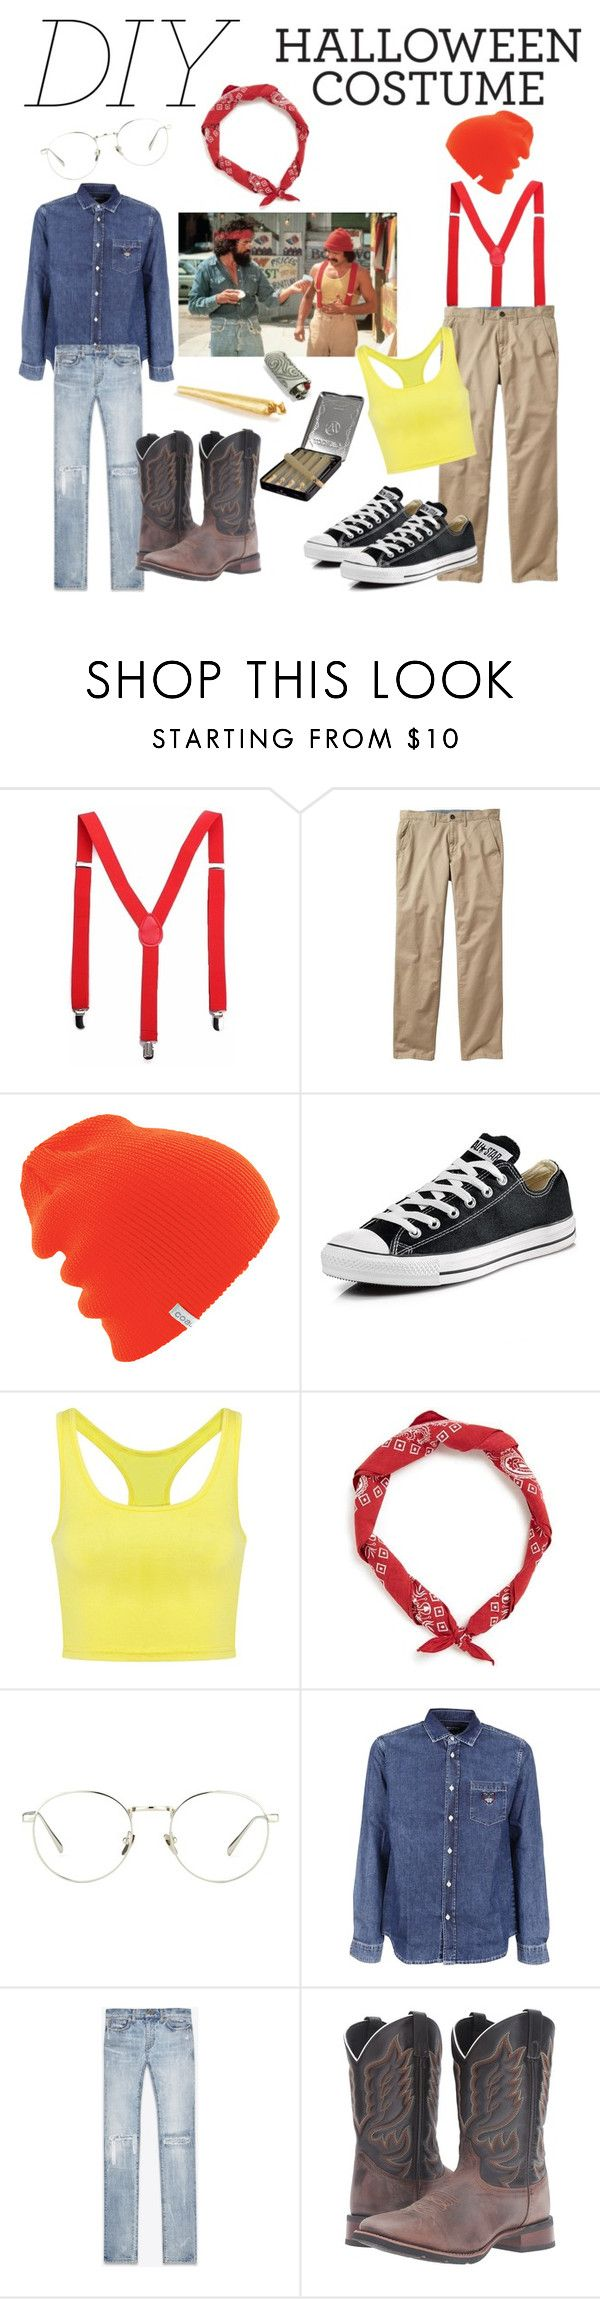 """Cheech and Chong DIY"" by angelarmoyer ❤ liked on Polyvore featuring Gap, 7 For All Mankind, Coal, Converse, Linda Farrow, Kenzo, Yves Saint Laurent, Laredo, men's fashion and menswear"